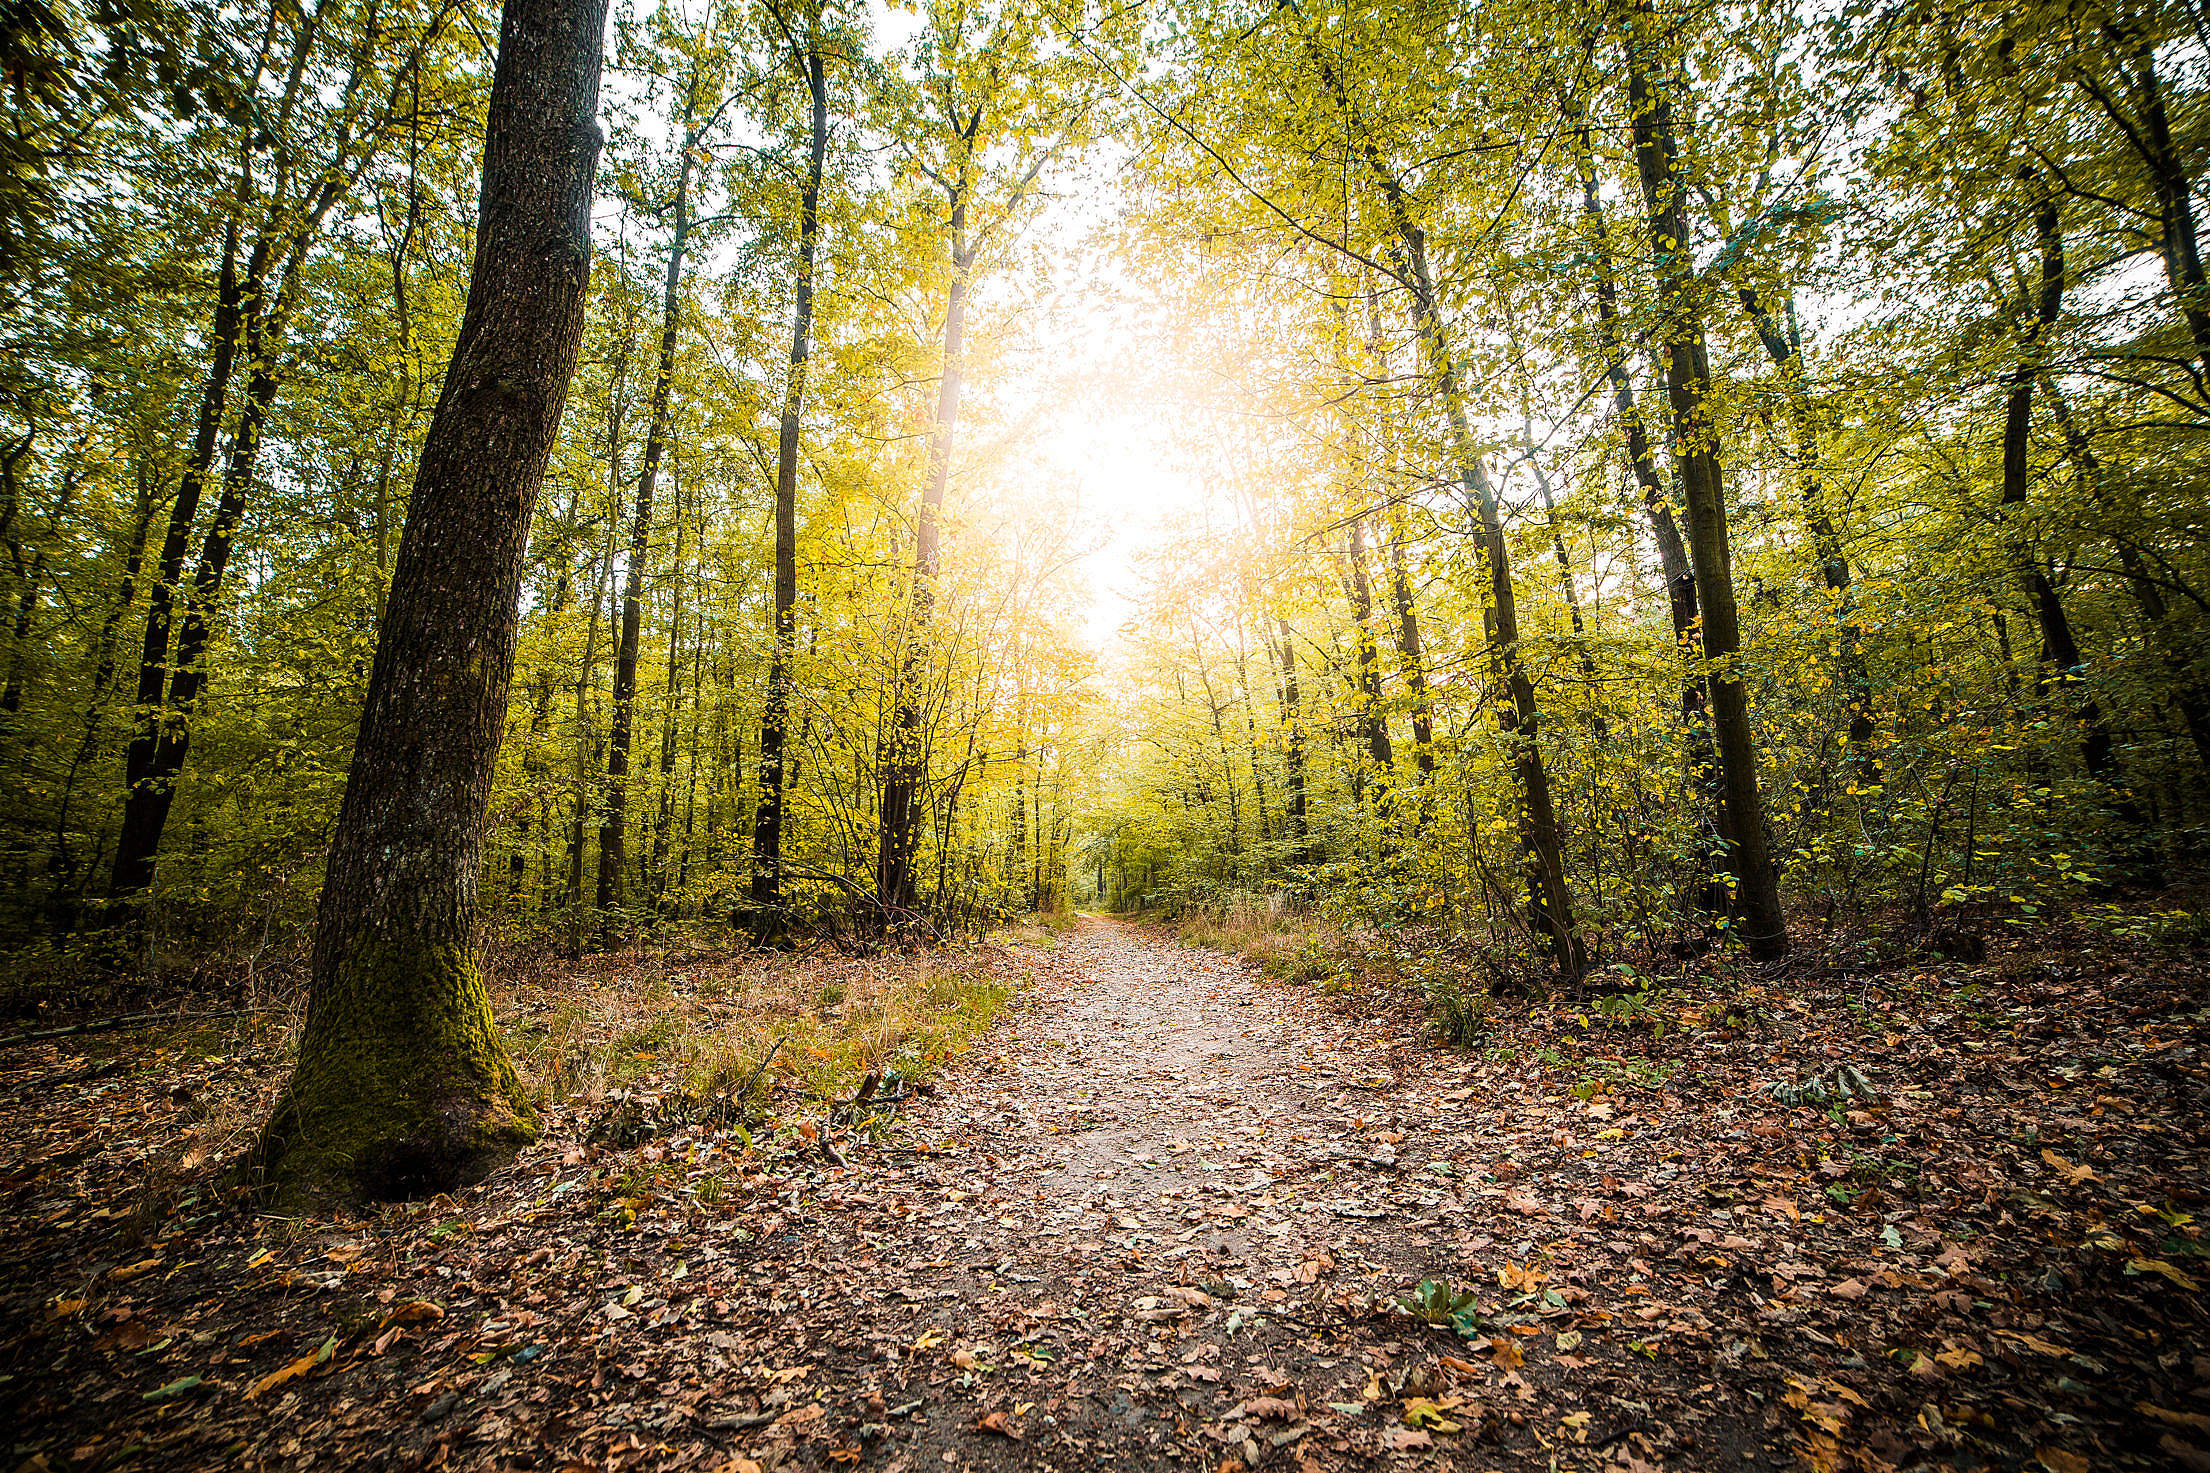 Forest Path in Fall Season Free Stock Photo